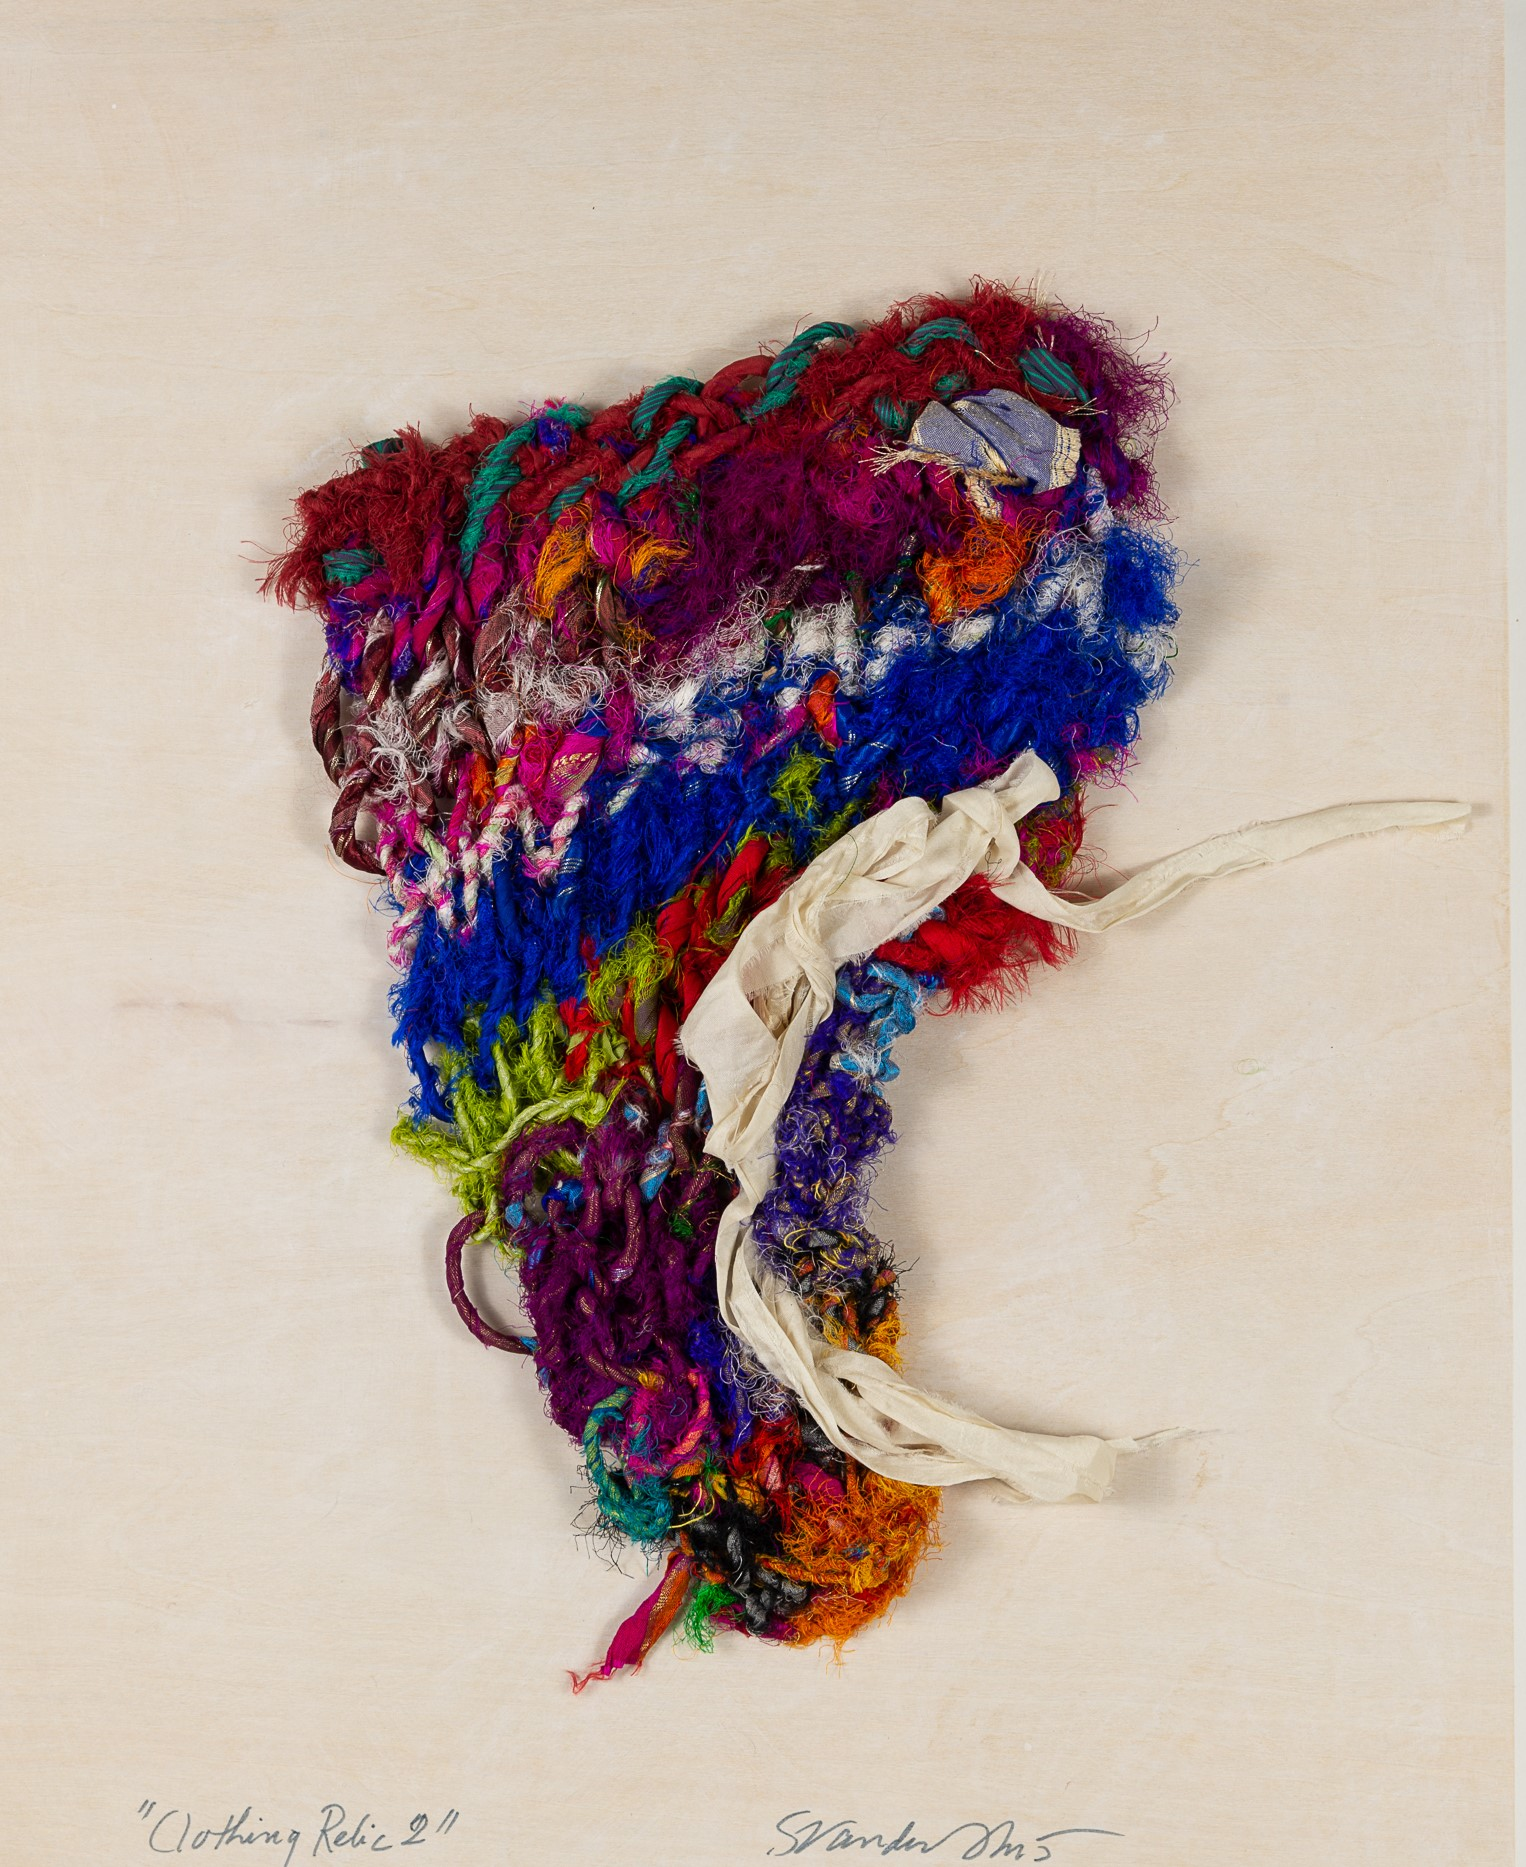 Sylvia Vander Sluis,  Clothing Relic 2 (Red/Blue/White)  Handknit silk and ribbon, 18x14x1.5